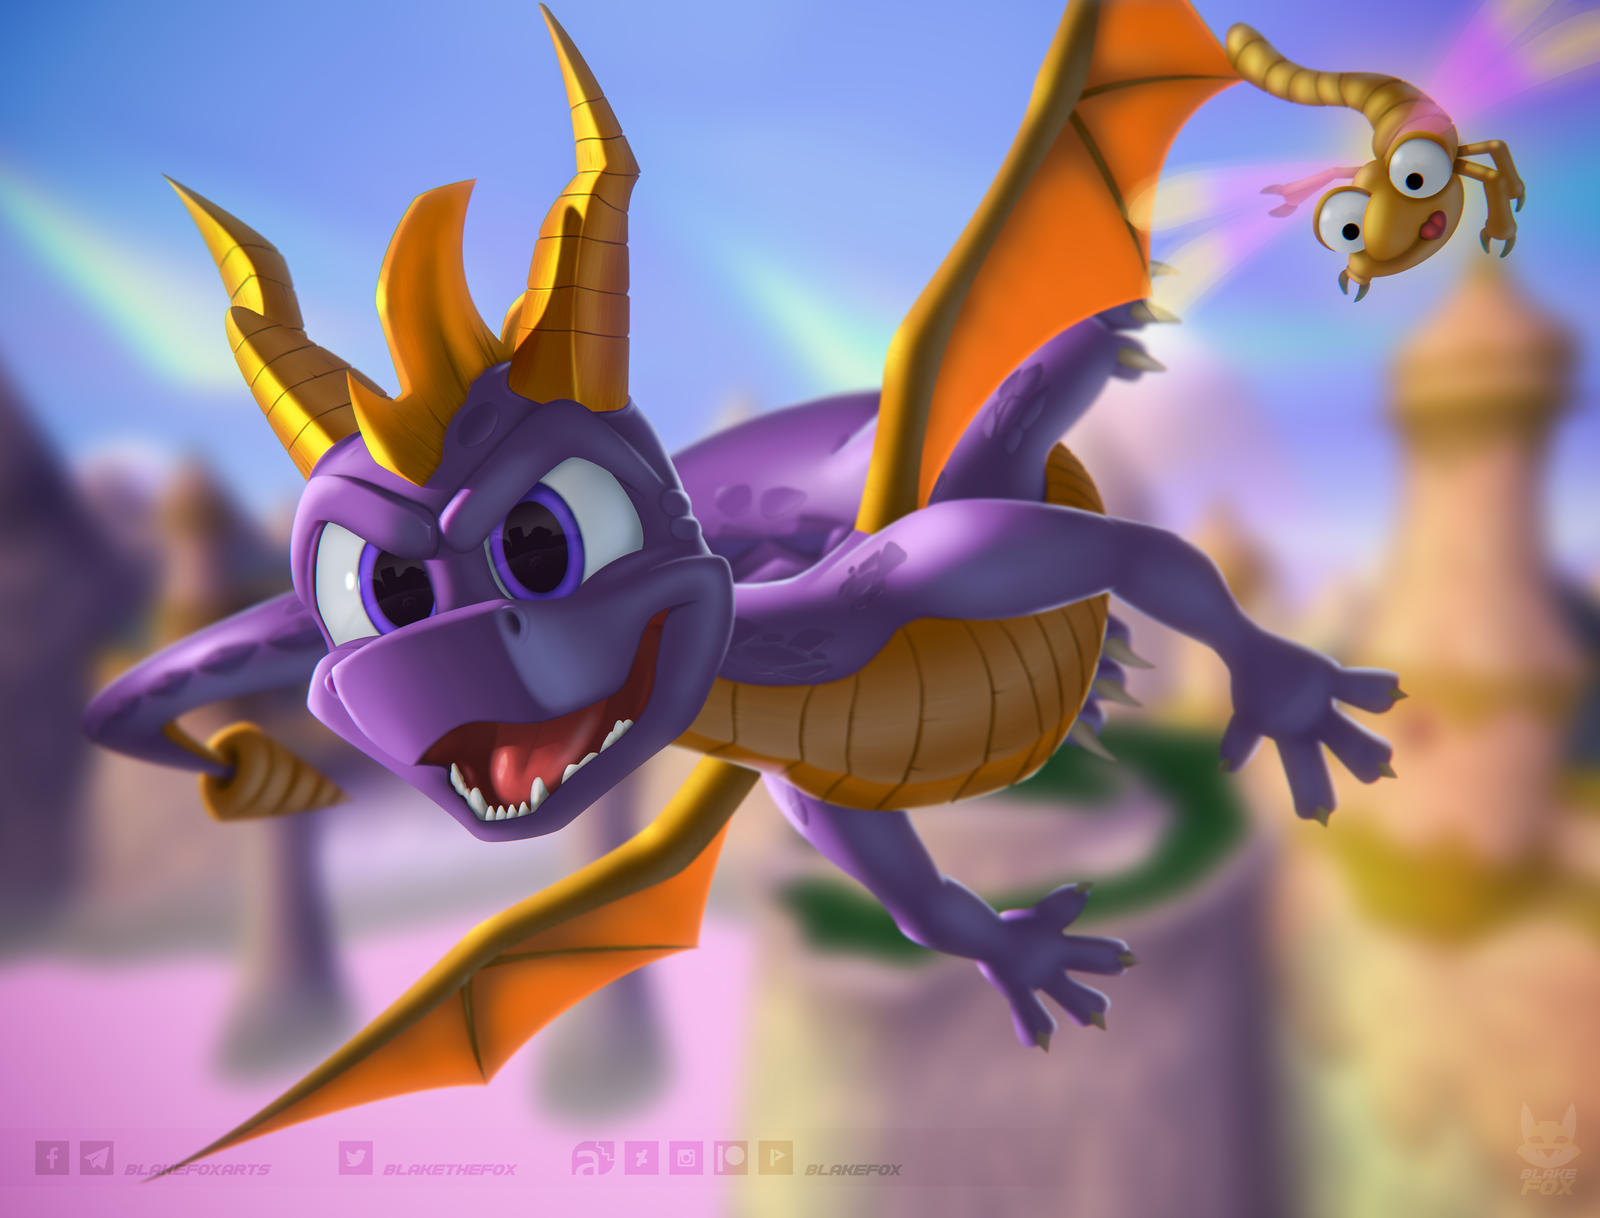 Spyro The Dragon 20th anniversary